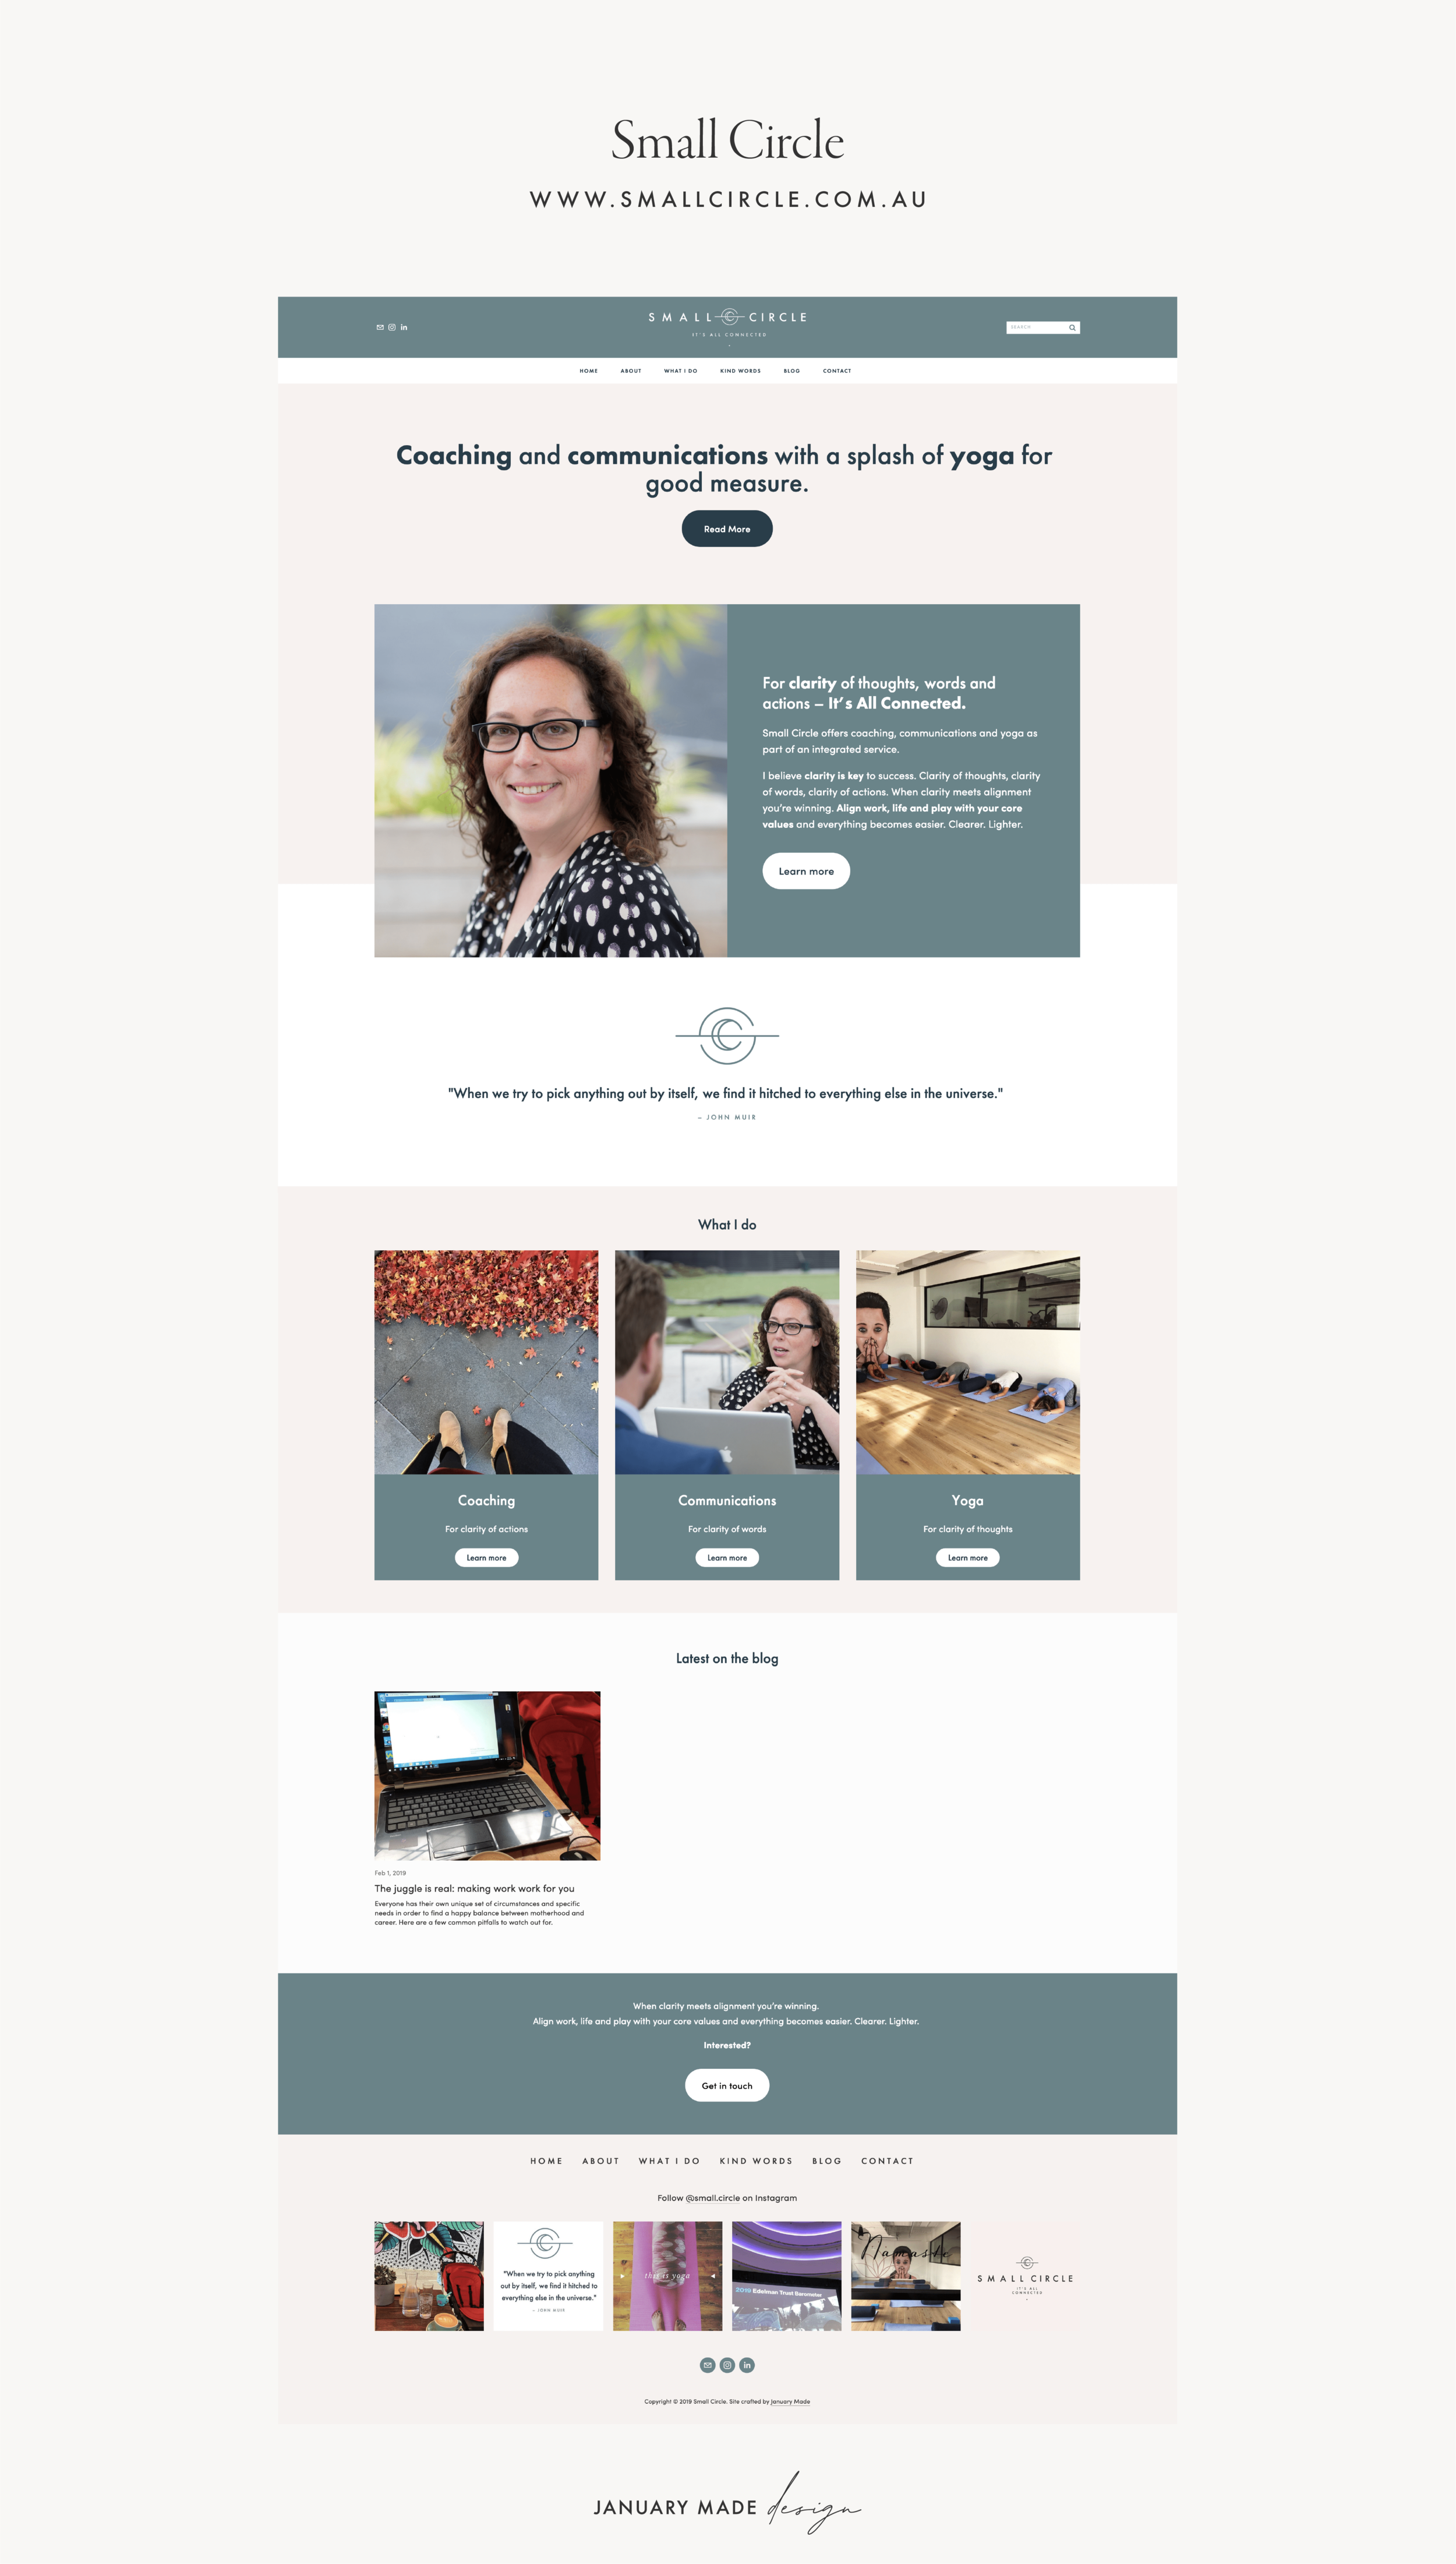 Small Circle Website - by January Made Design